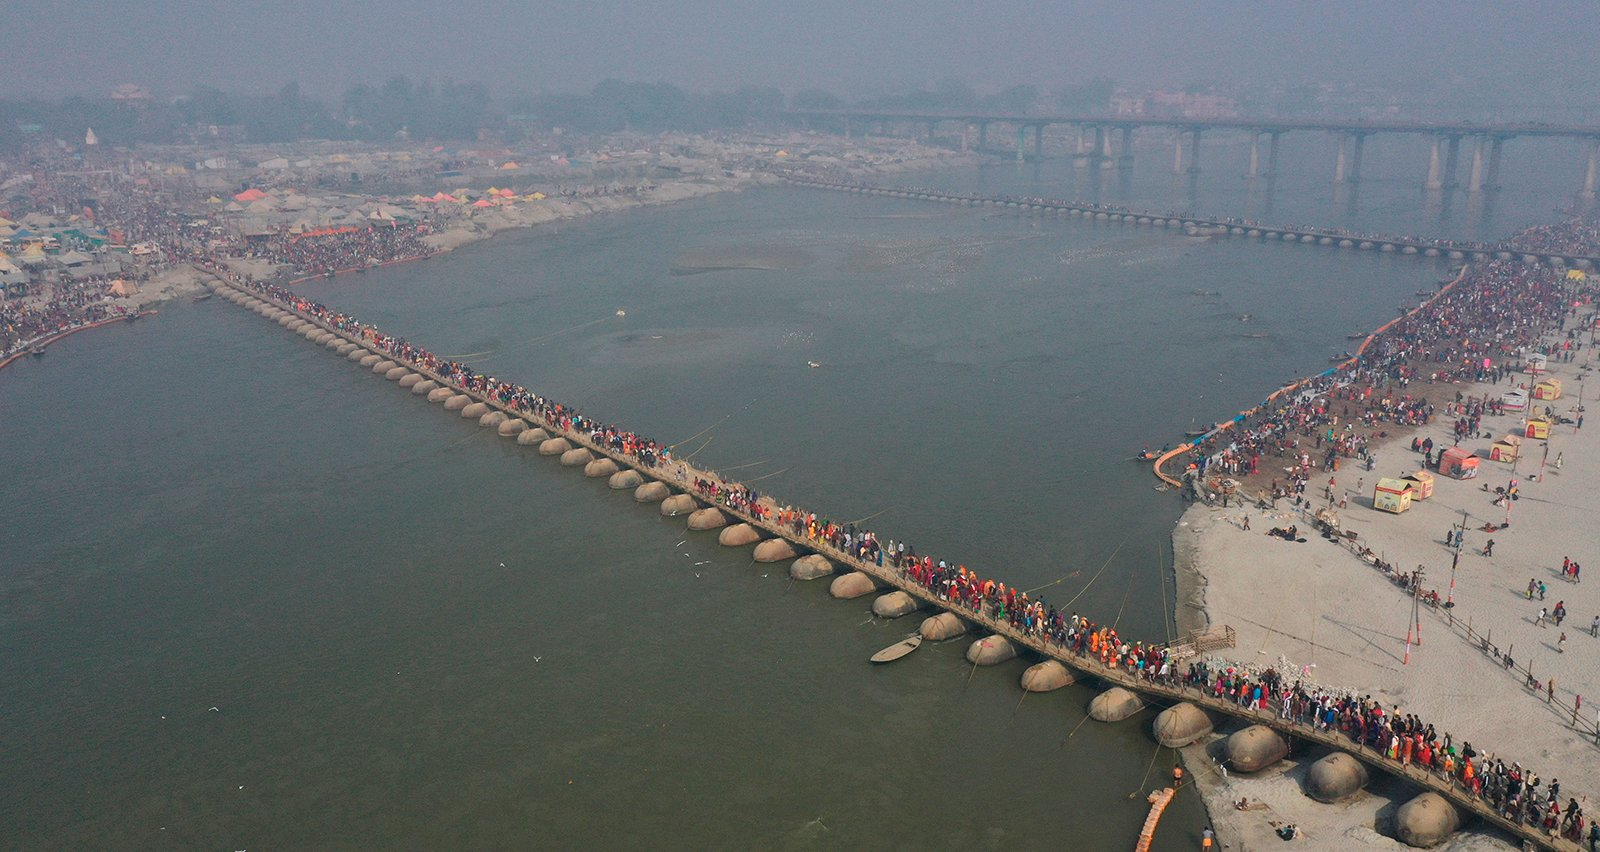 """Hindu devotees cross a pontoon bridge at Sangam, the confluence of the rivers Ganges and the Yamuna, on 'Mauni Amavasya' or new moon day, an auspicious bathing day during the annual month-long Hindu religious festival """"Magh Mela"""" In Prayagraj, India, on Thursday, Feb. 11, 2021. Hundreds of thousands of Hindu pilgrims take dips in the confluence, hoping to wash away sins during the month-long festival. (AP Photo/Rajesh Kumar Singh)"""